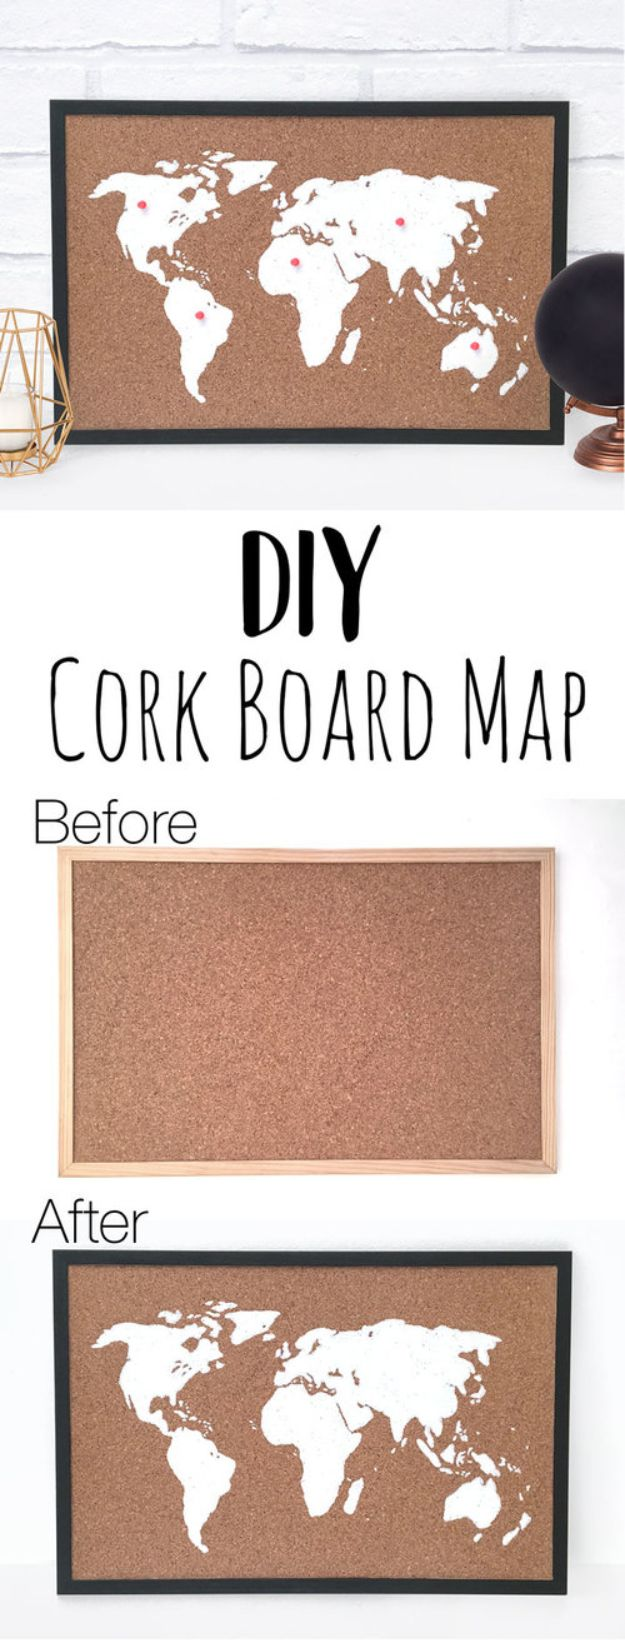 DIY Ideas With Maps - DIY Cork Board Map - Easy Crafts, Home Decor, Art and Gifts Your Can Make With A Map - Pinboard, Canvas, Painting, Paper Flowers, Signs Projects